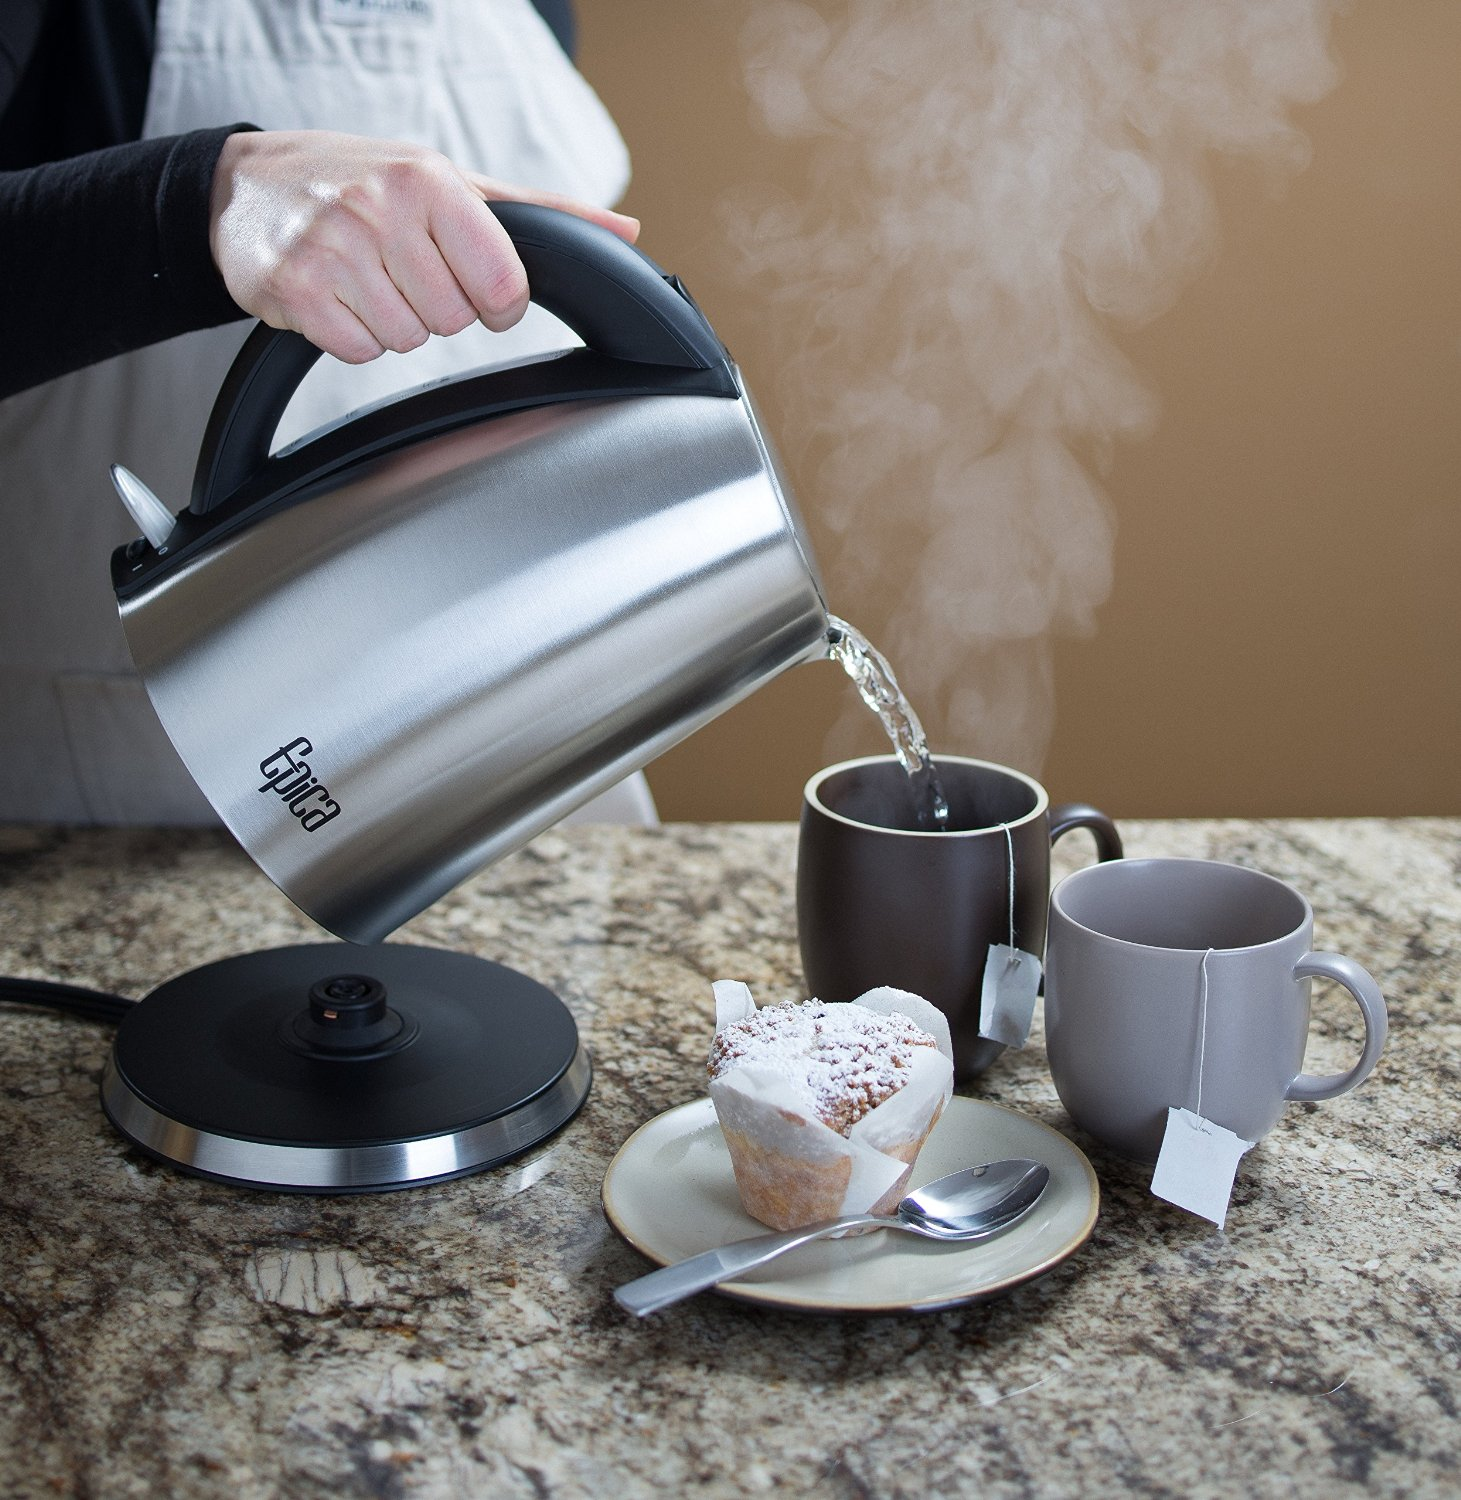 Epica 1 75 Electric Kettle Update Reviews 2015